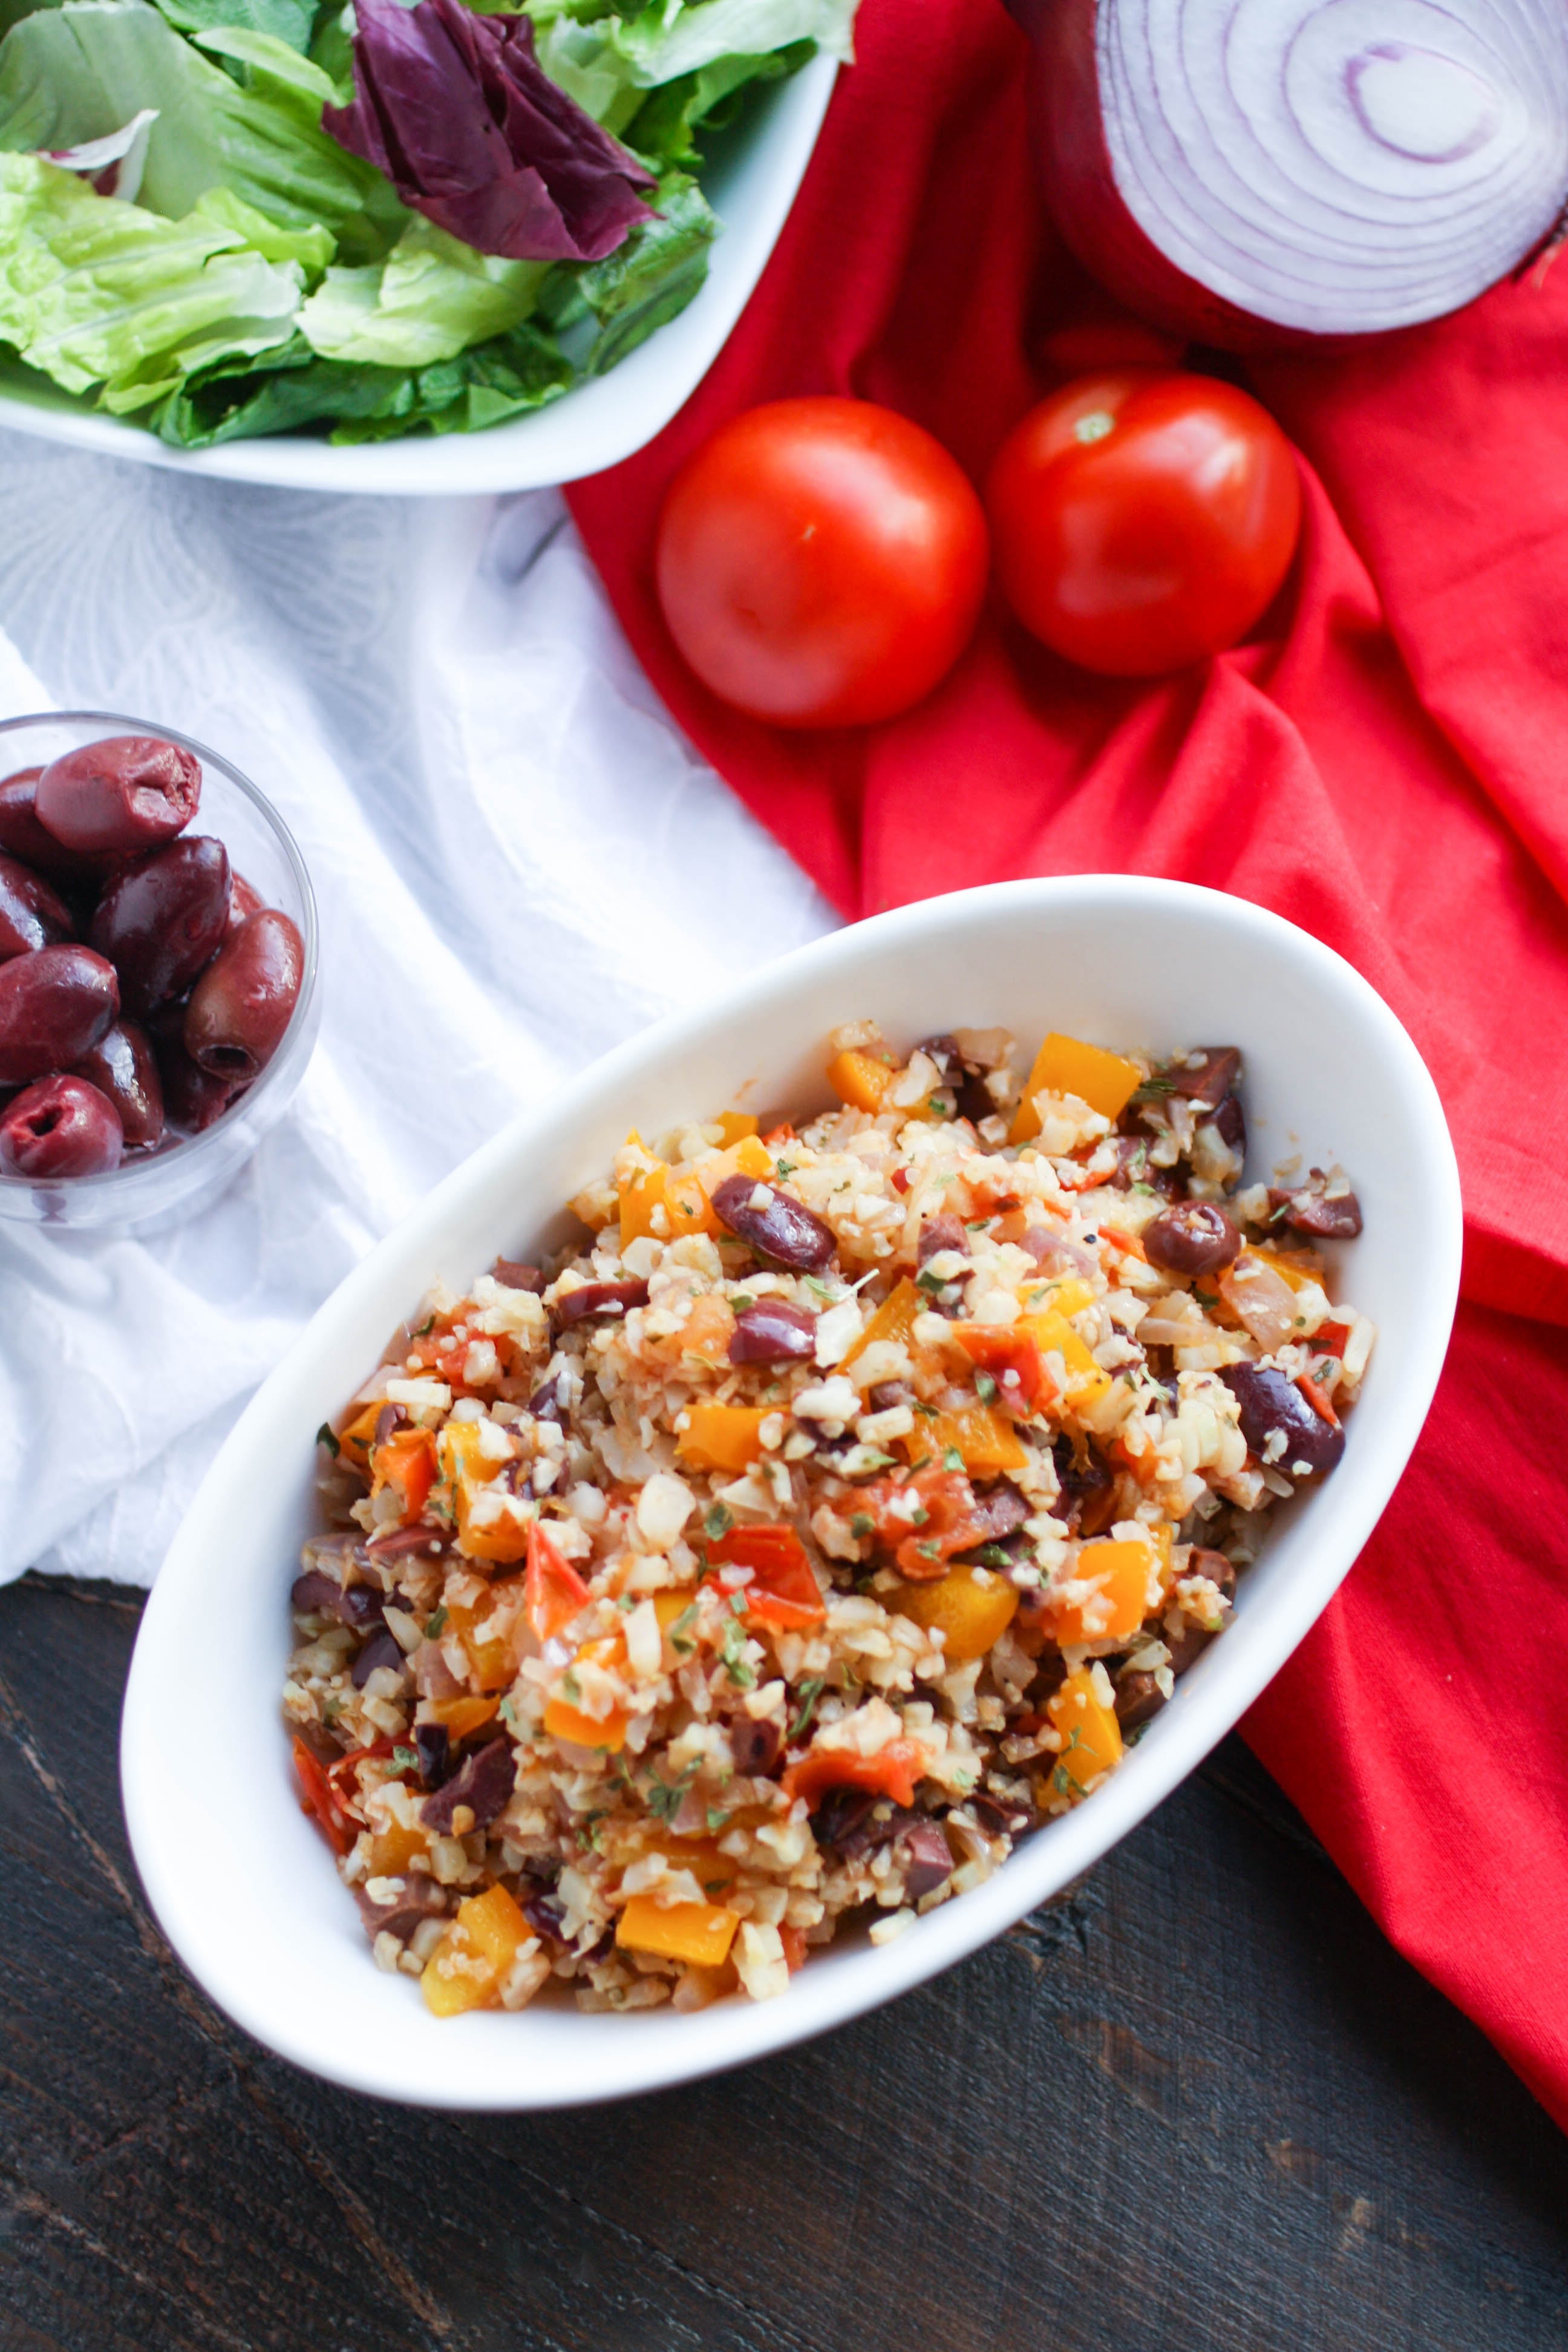 Mediterranean Cauliflower Rice is a healthy and tasty side for any meal. You'll love this flavorful cauliflower rice dish.